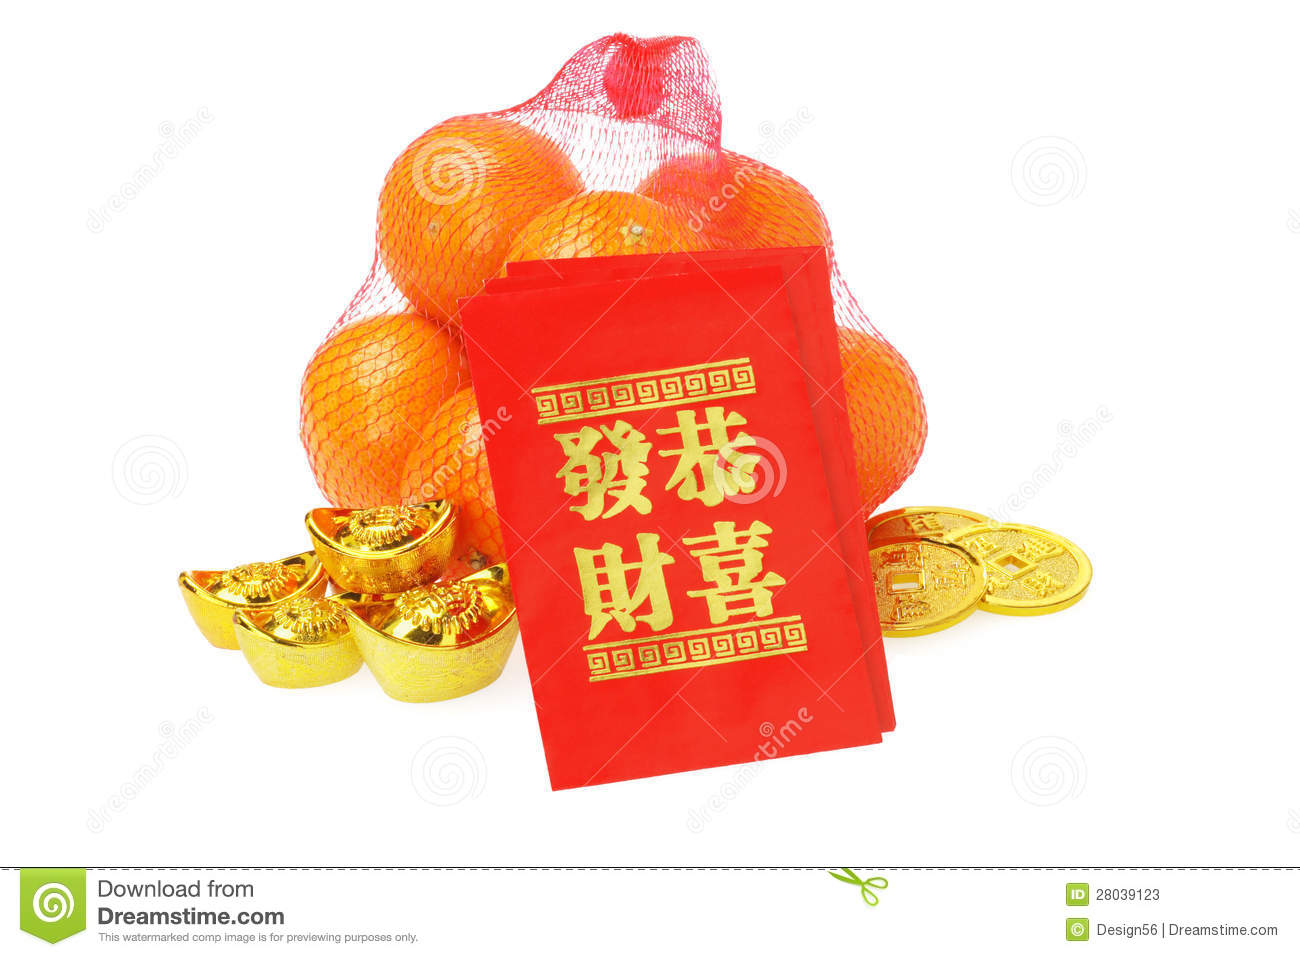 how to say orange in chinese